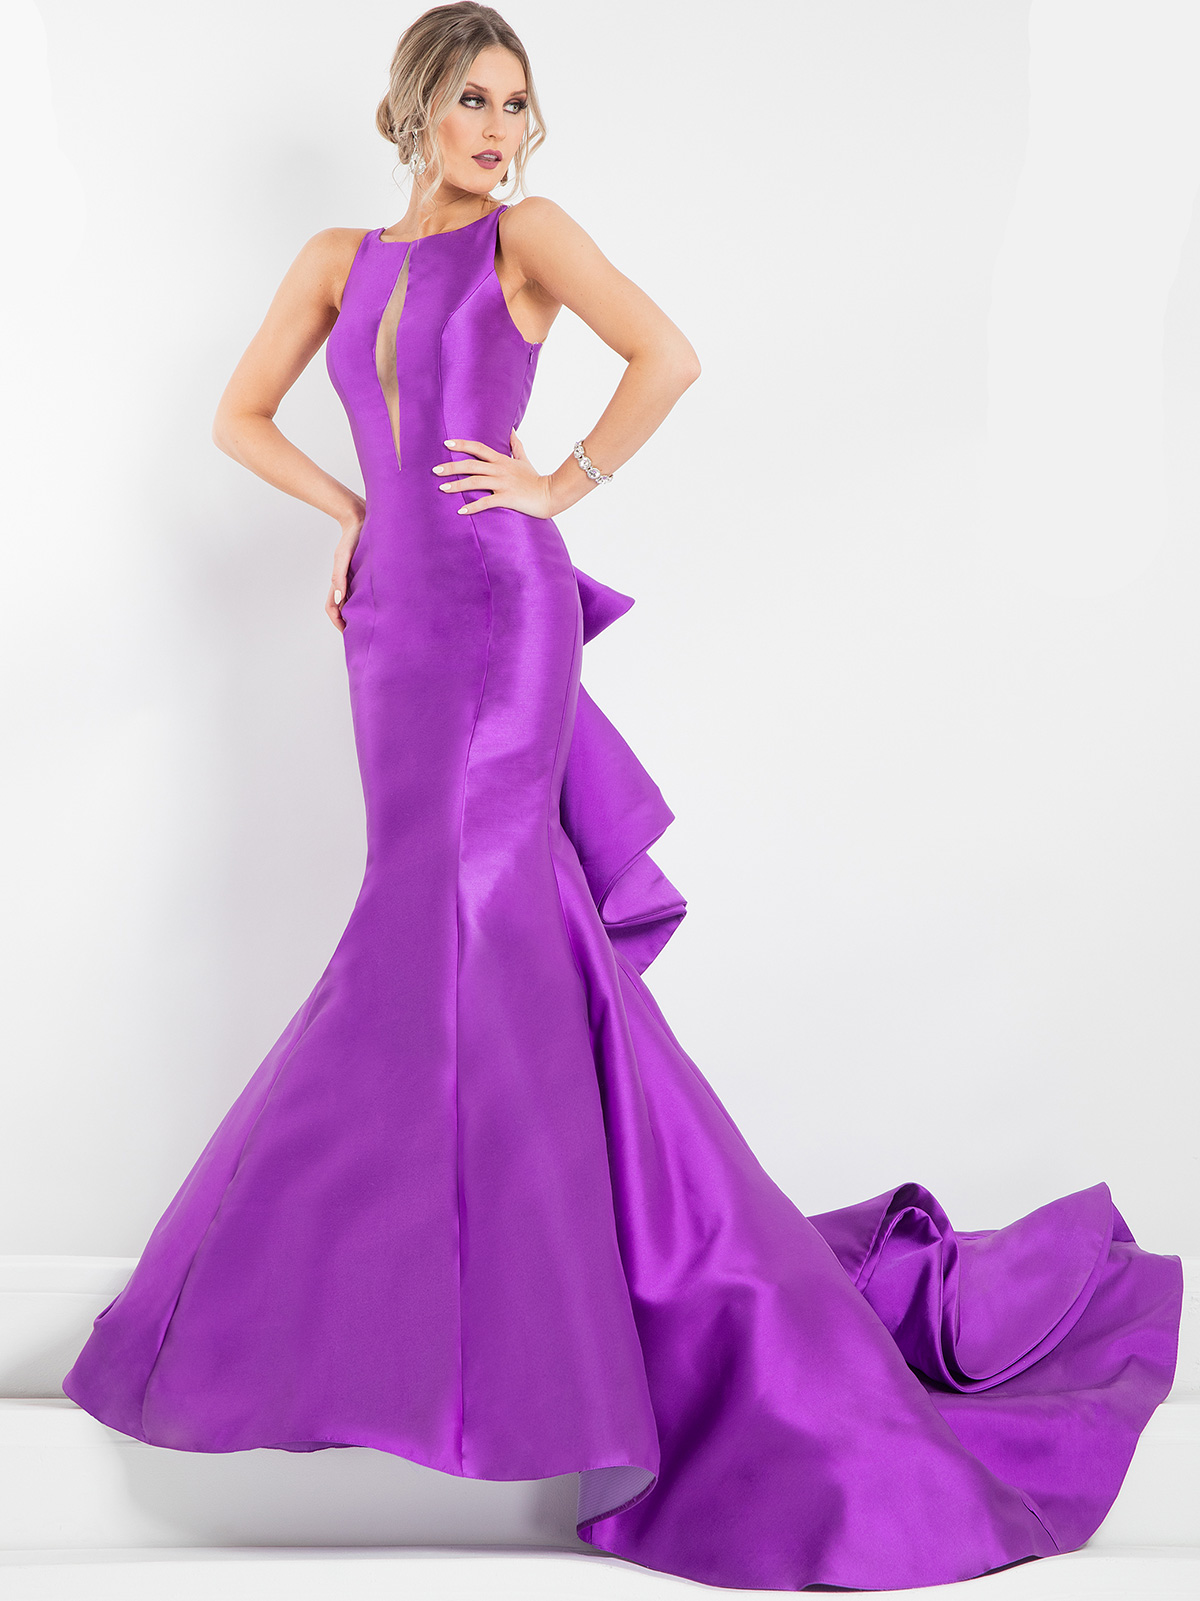 Prima Donna 5898 Plunging Bodice Pageant Dress|PageantDesigns.com